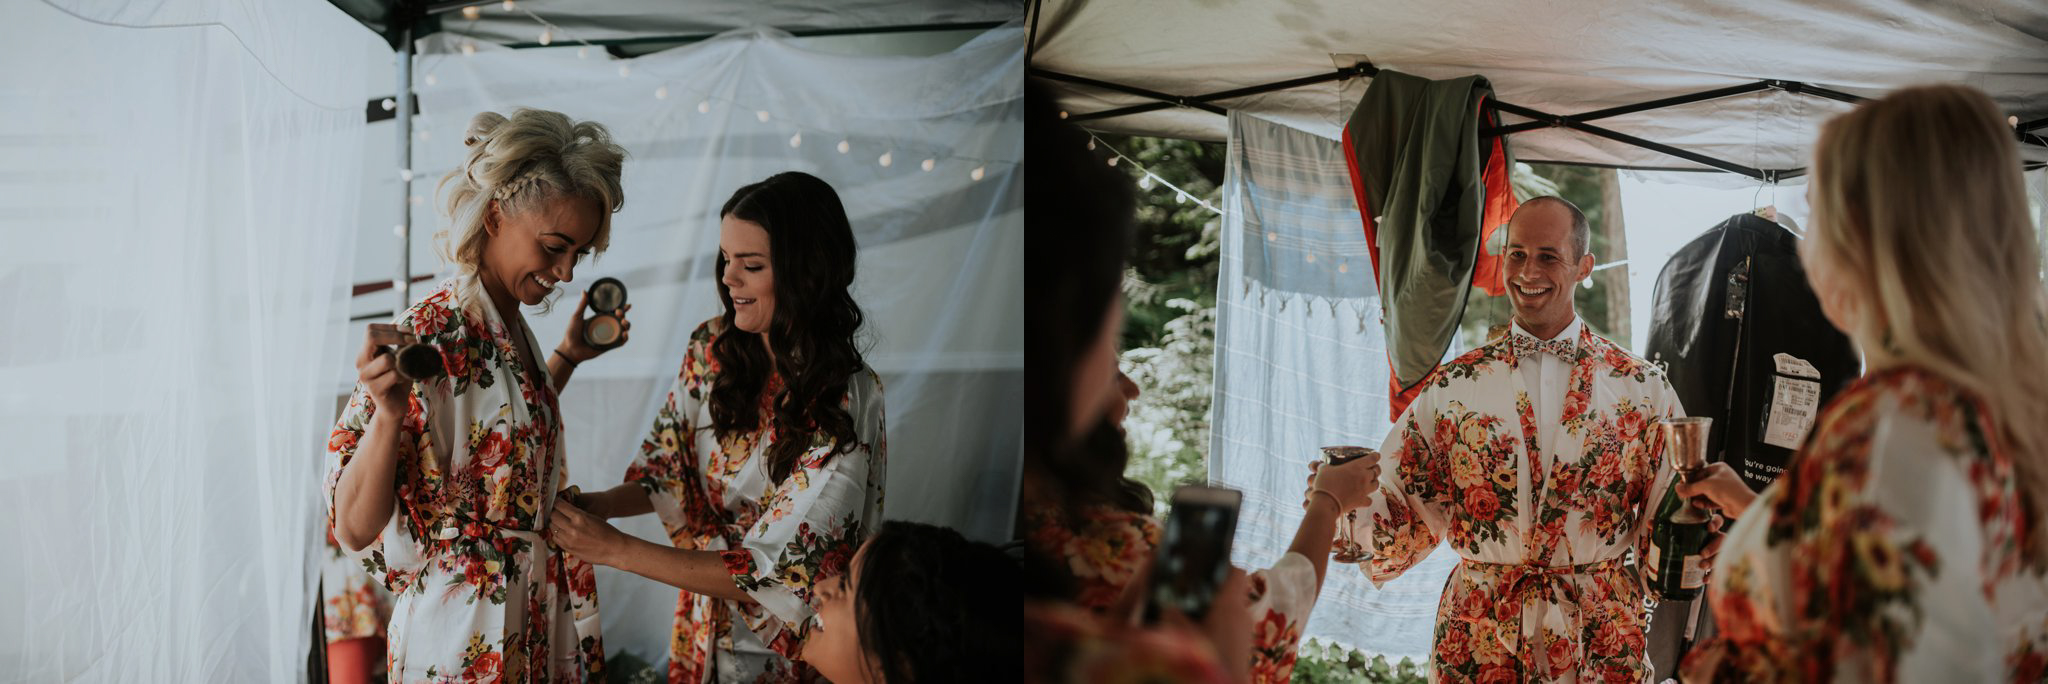 intimate-boho-campfire-wedding-shangri-la-on-the-green-seattle-wedding-photographer-caitlyn-nikula-photography-13.jpg